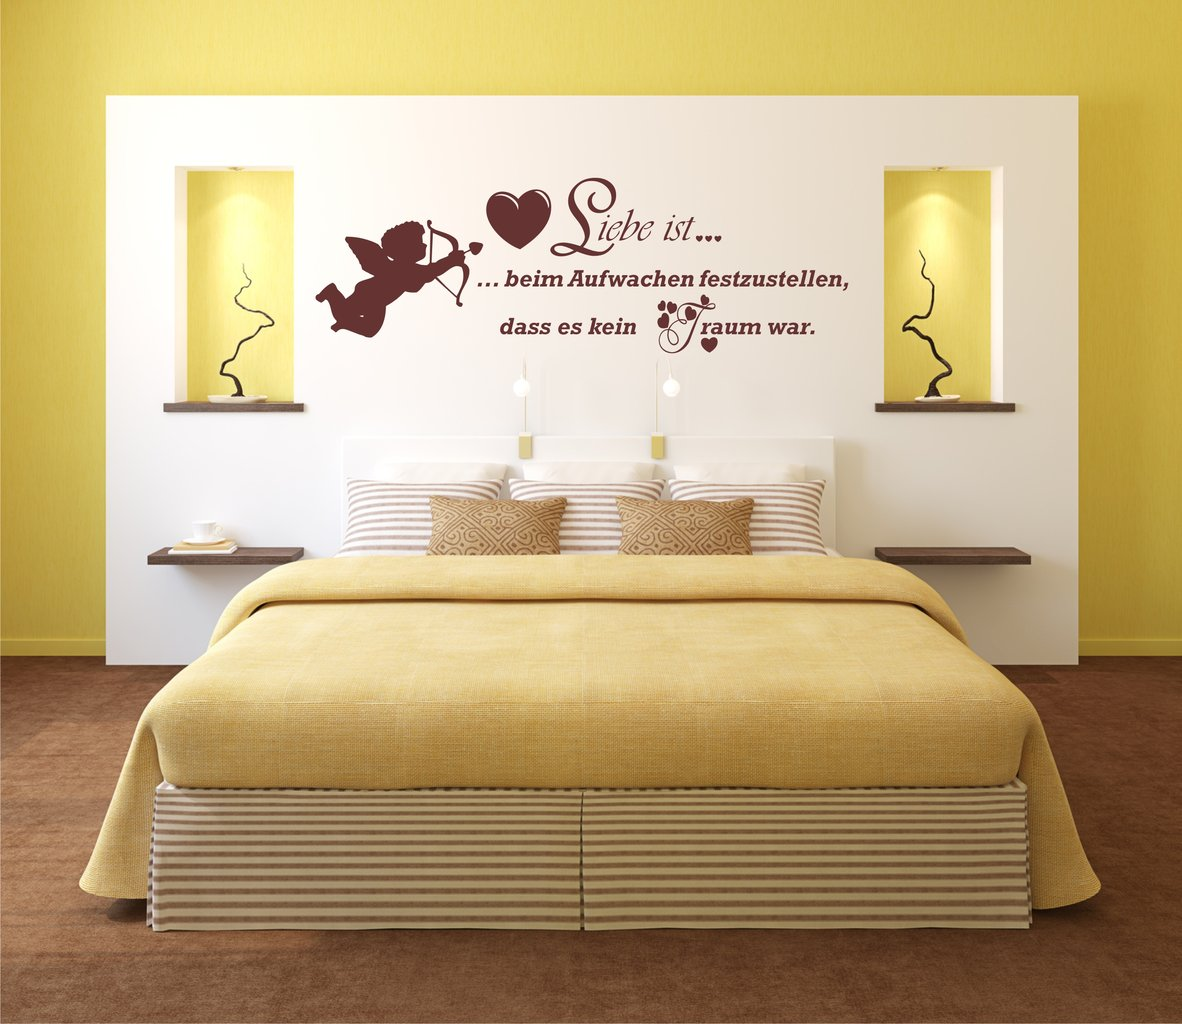 g nstiges wandtattoo 900 liebe engel wandsticker schlafzimmer liebe aufkleber ebay. Black Bedroom Furniture Sets. Home Design Ideas